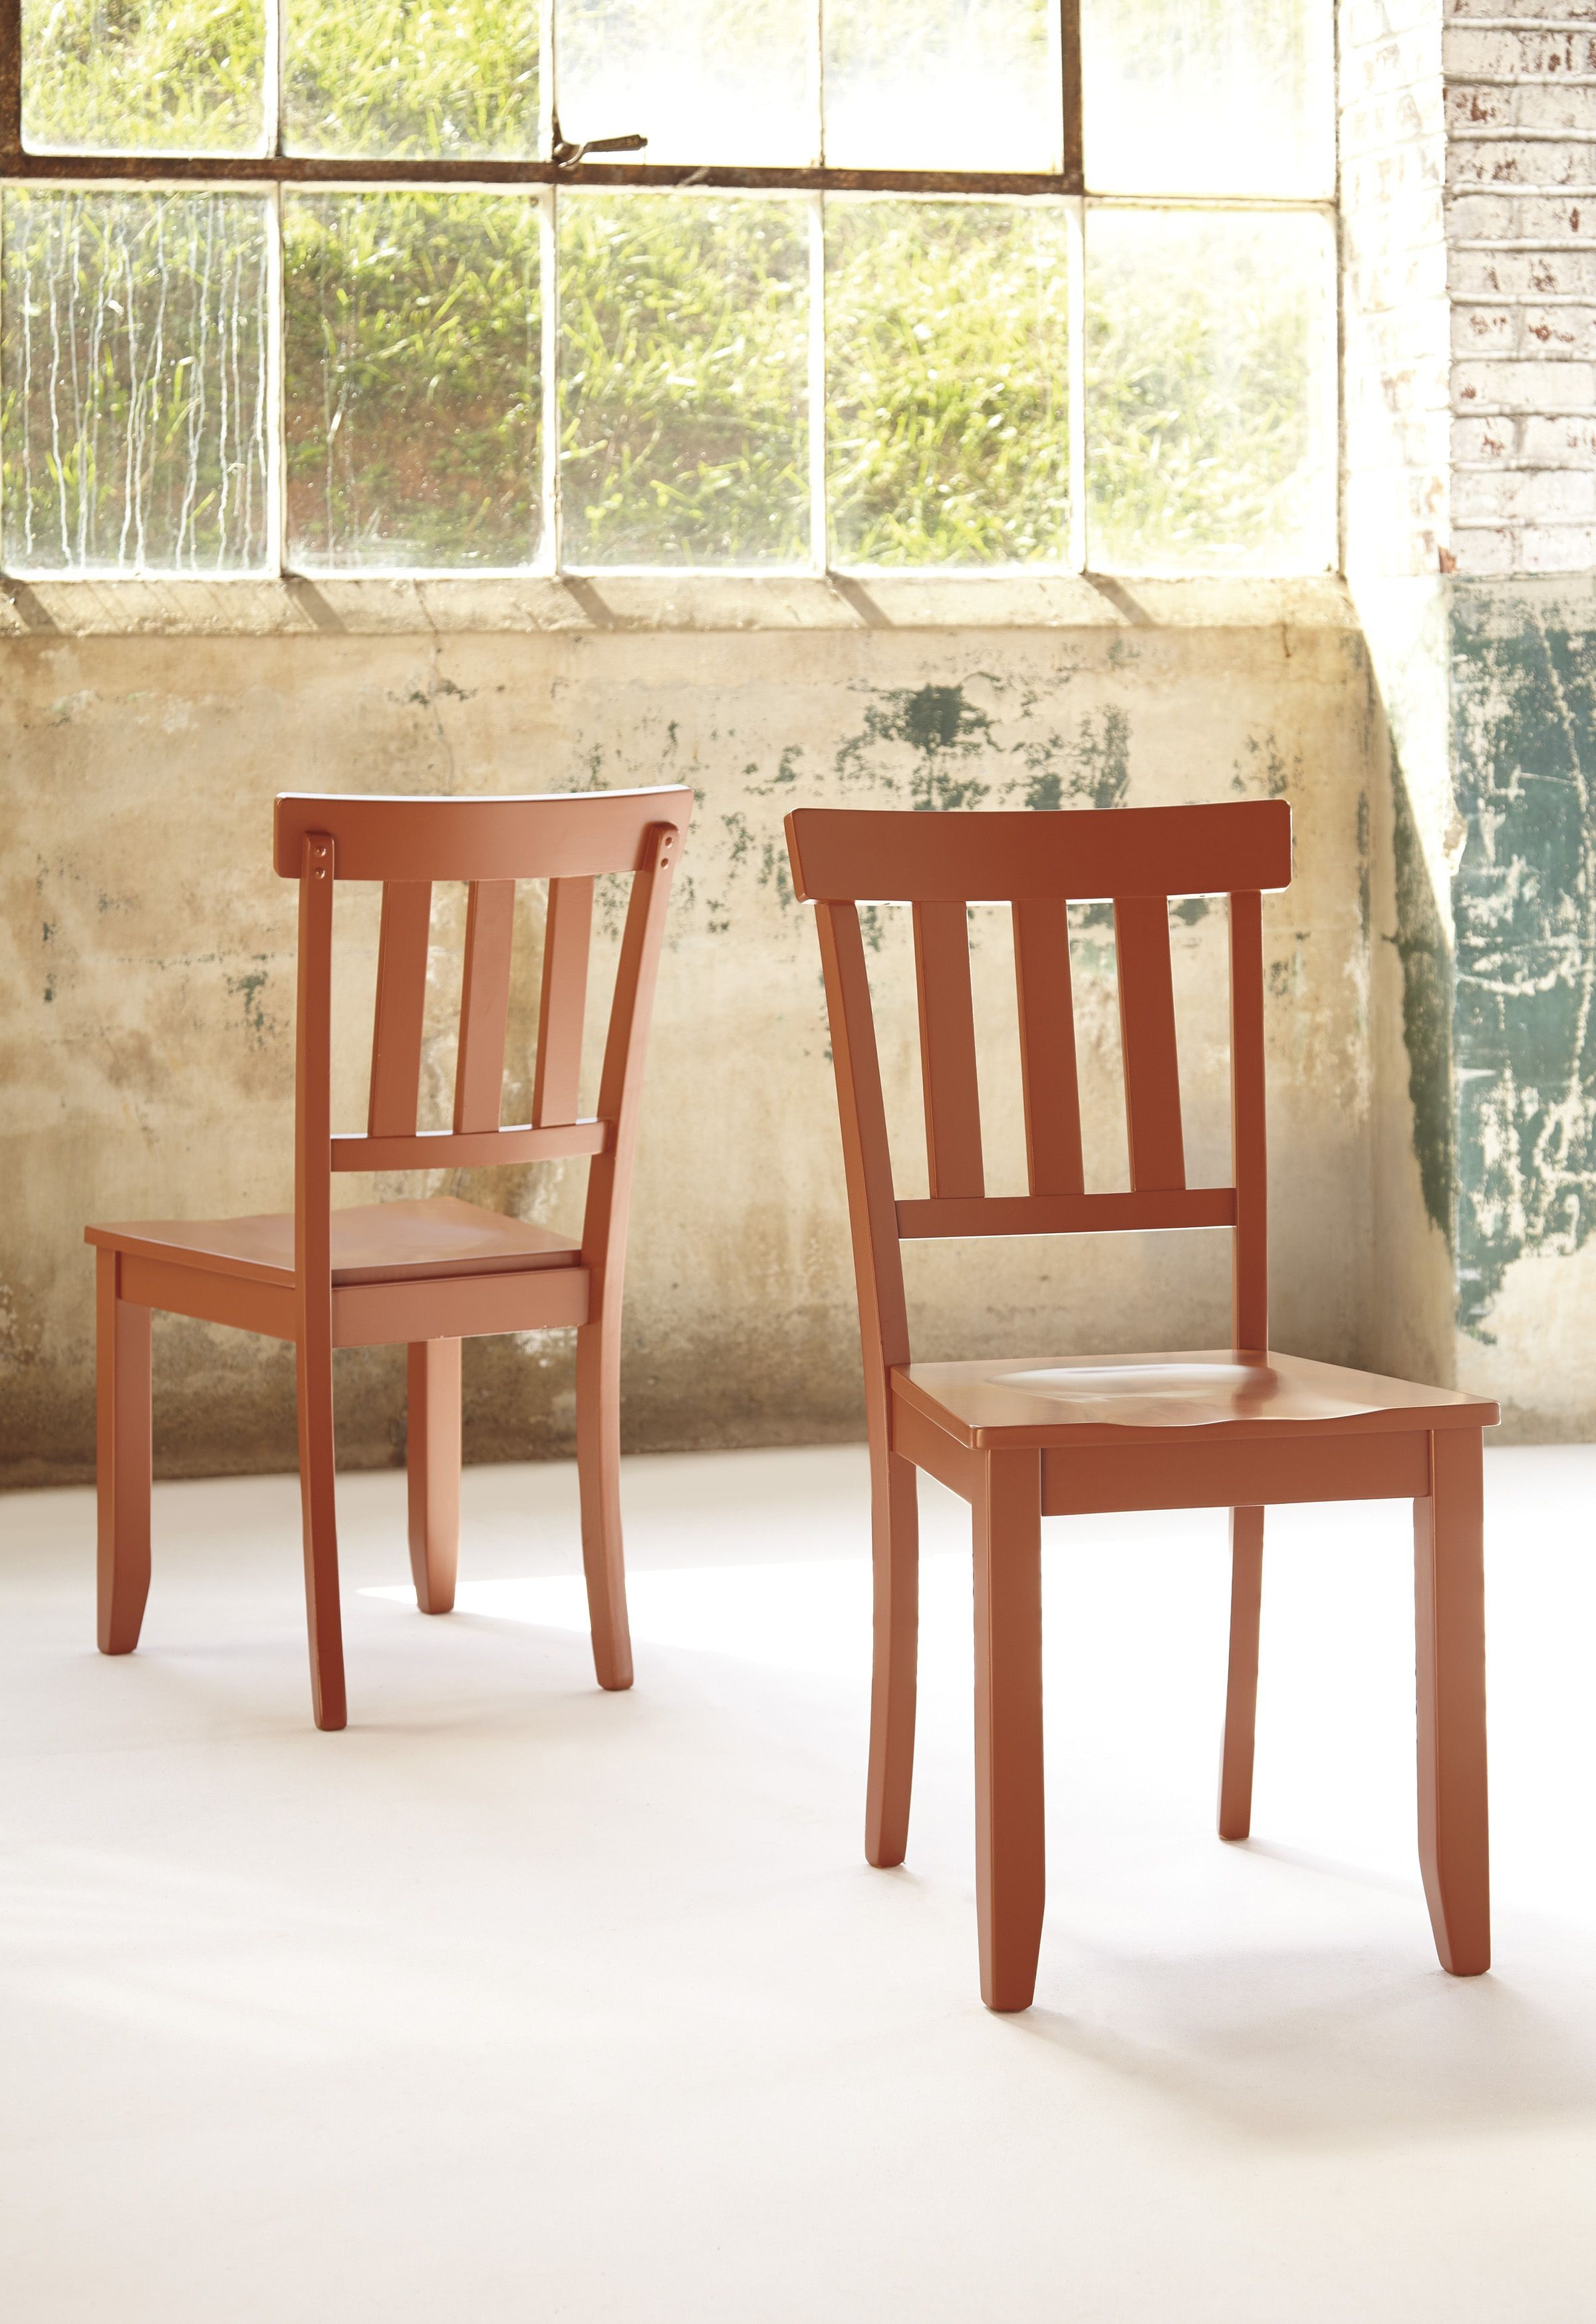 Bantilly Red Dining Room Chair Set Of 2 From Ashley D389 07 Coleman Furni